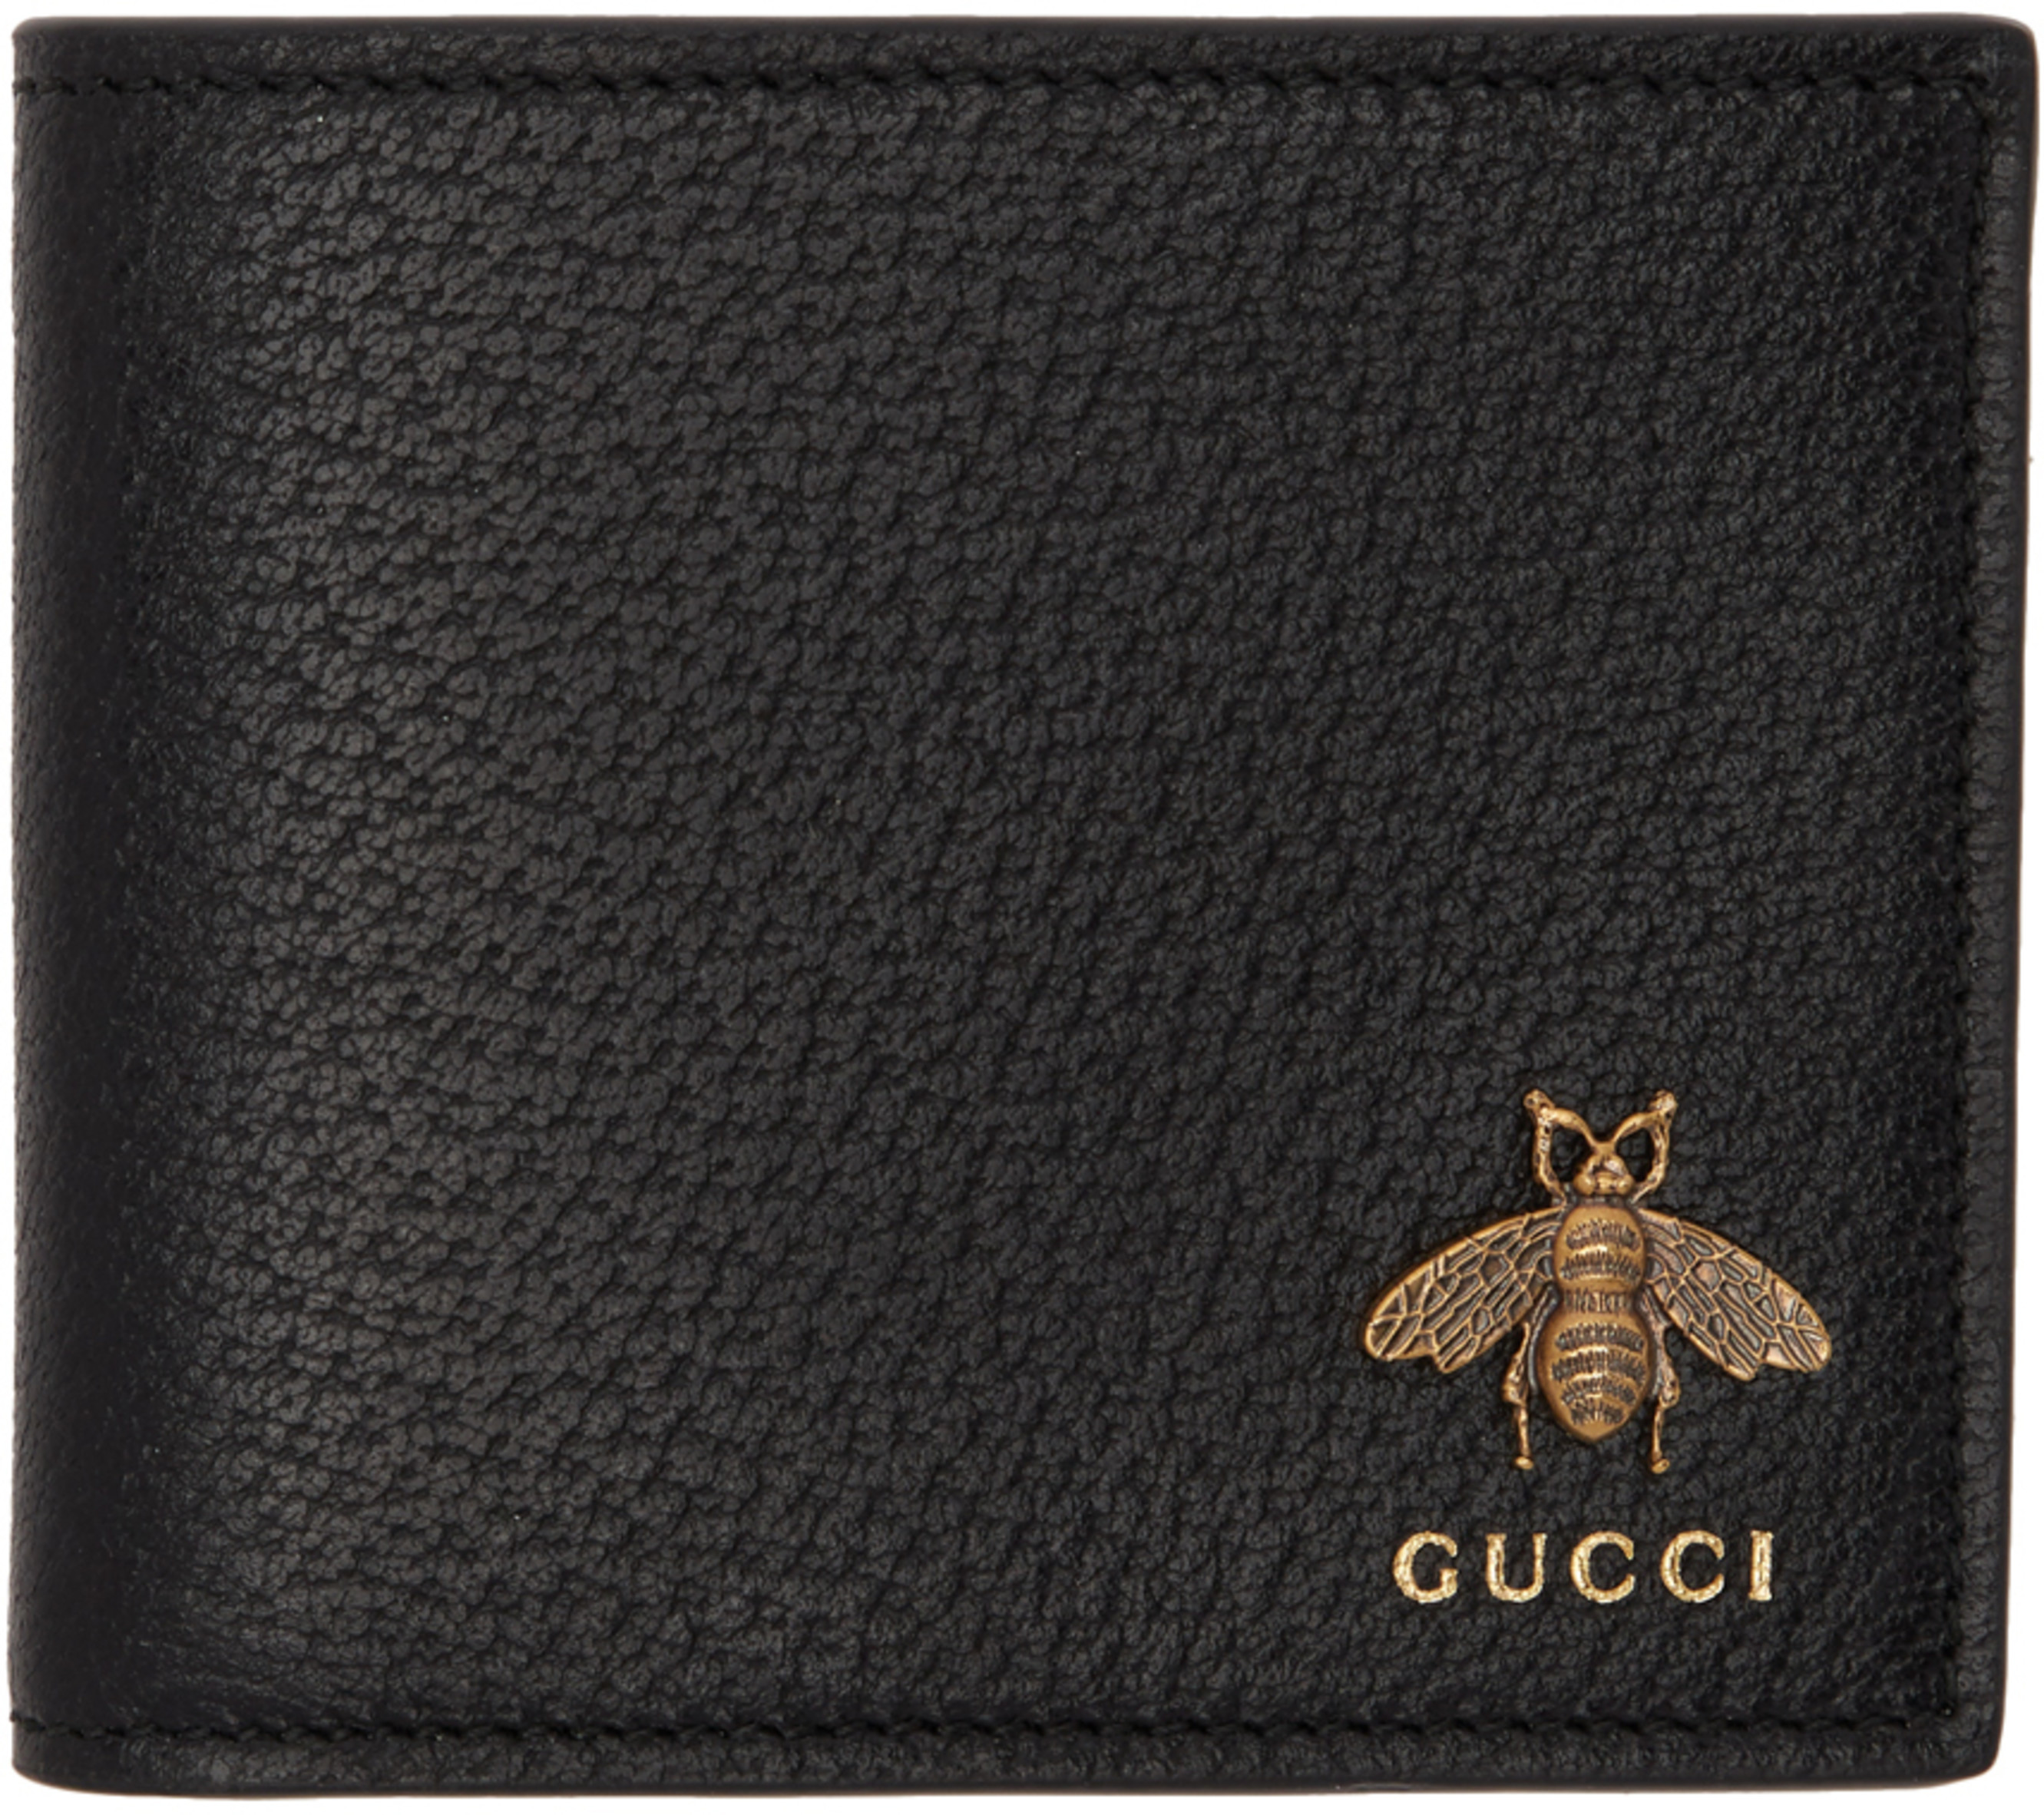 4a0f4f09a923 Gucci wallets & card holders for Men | SSENSE